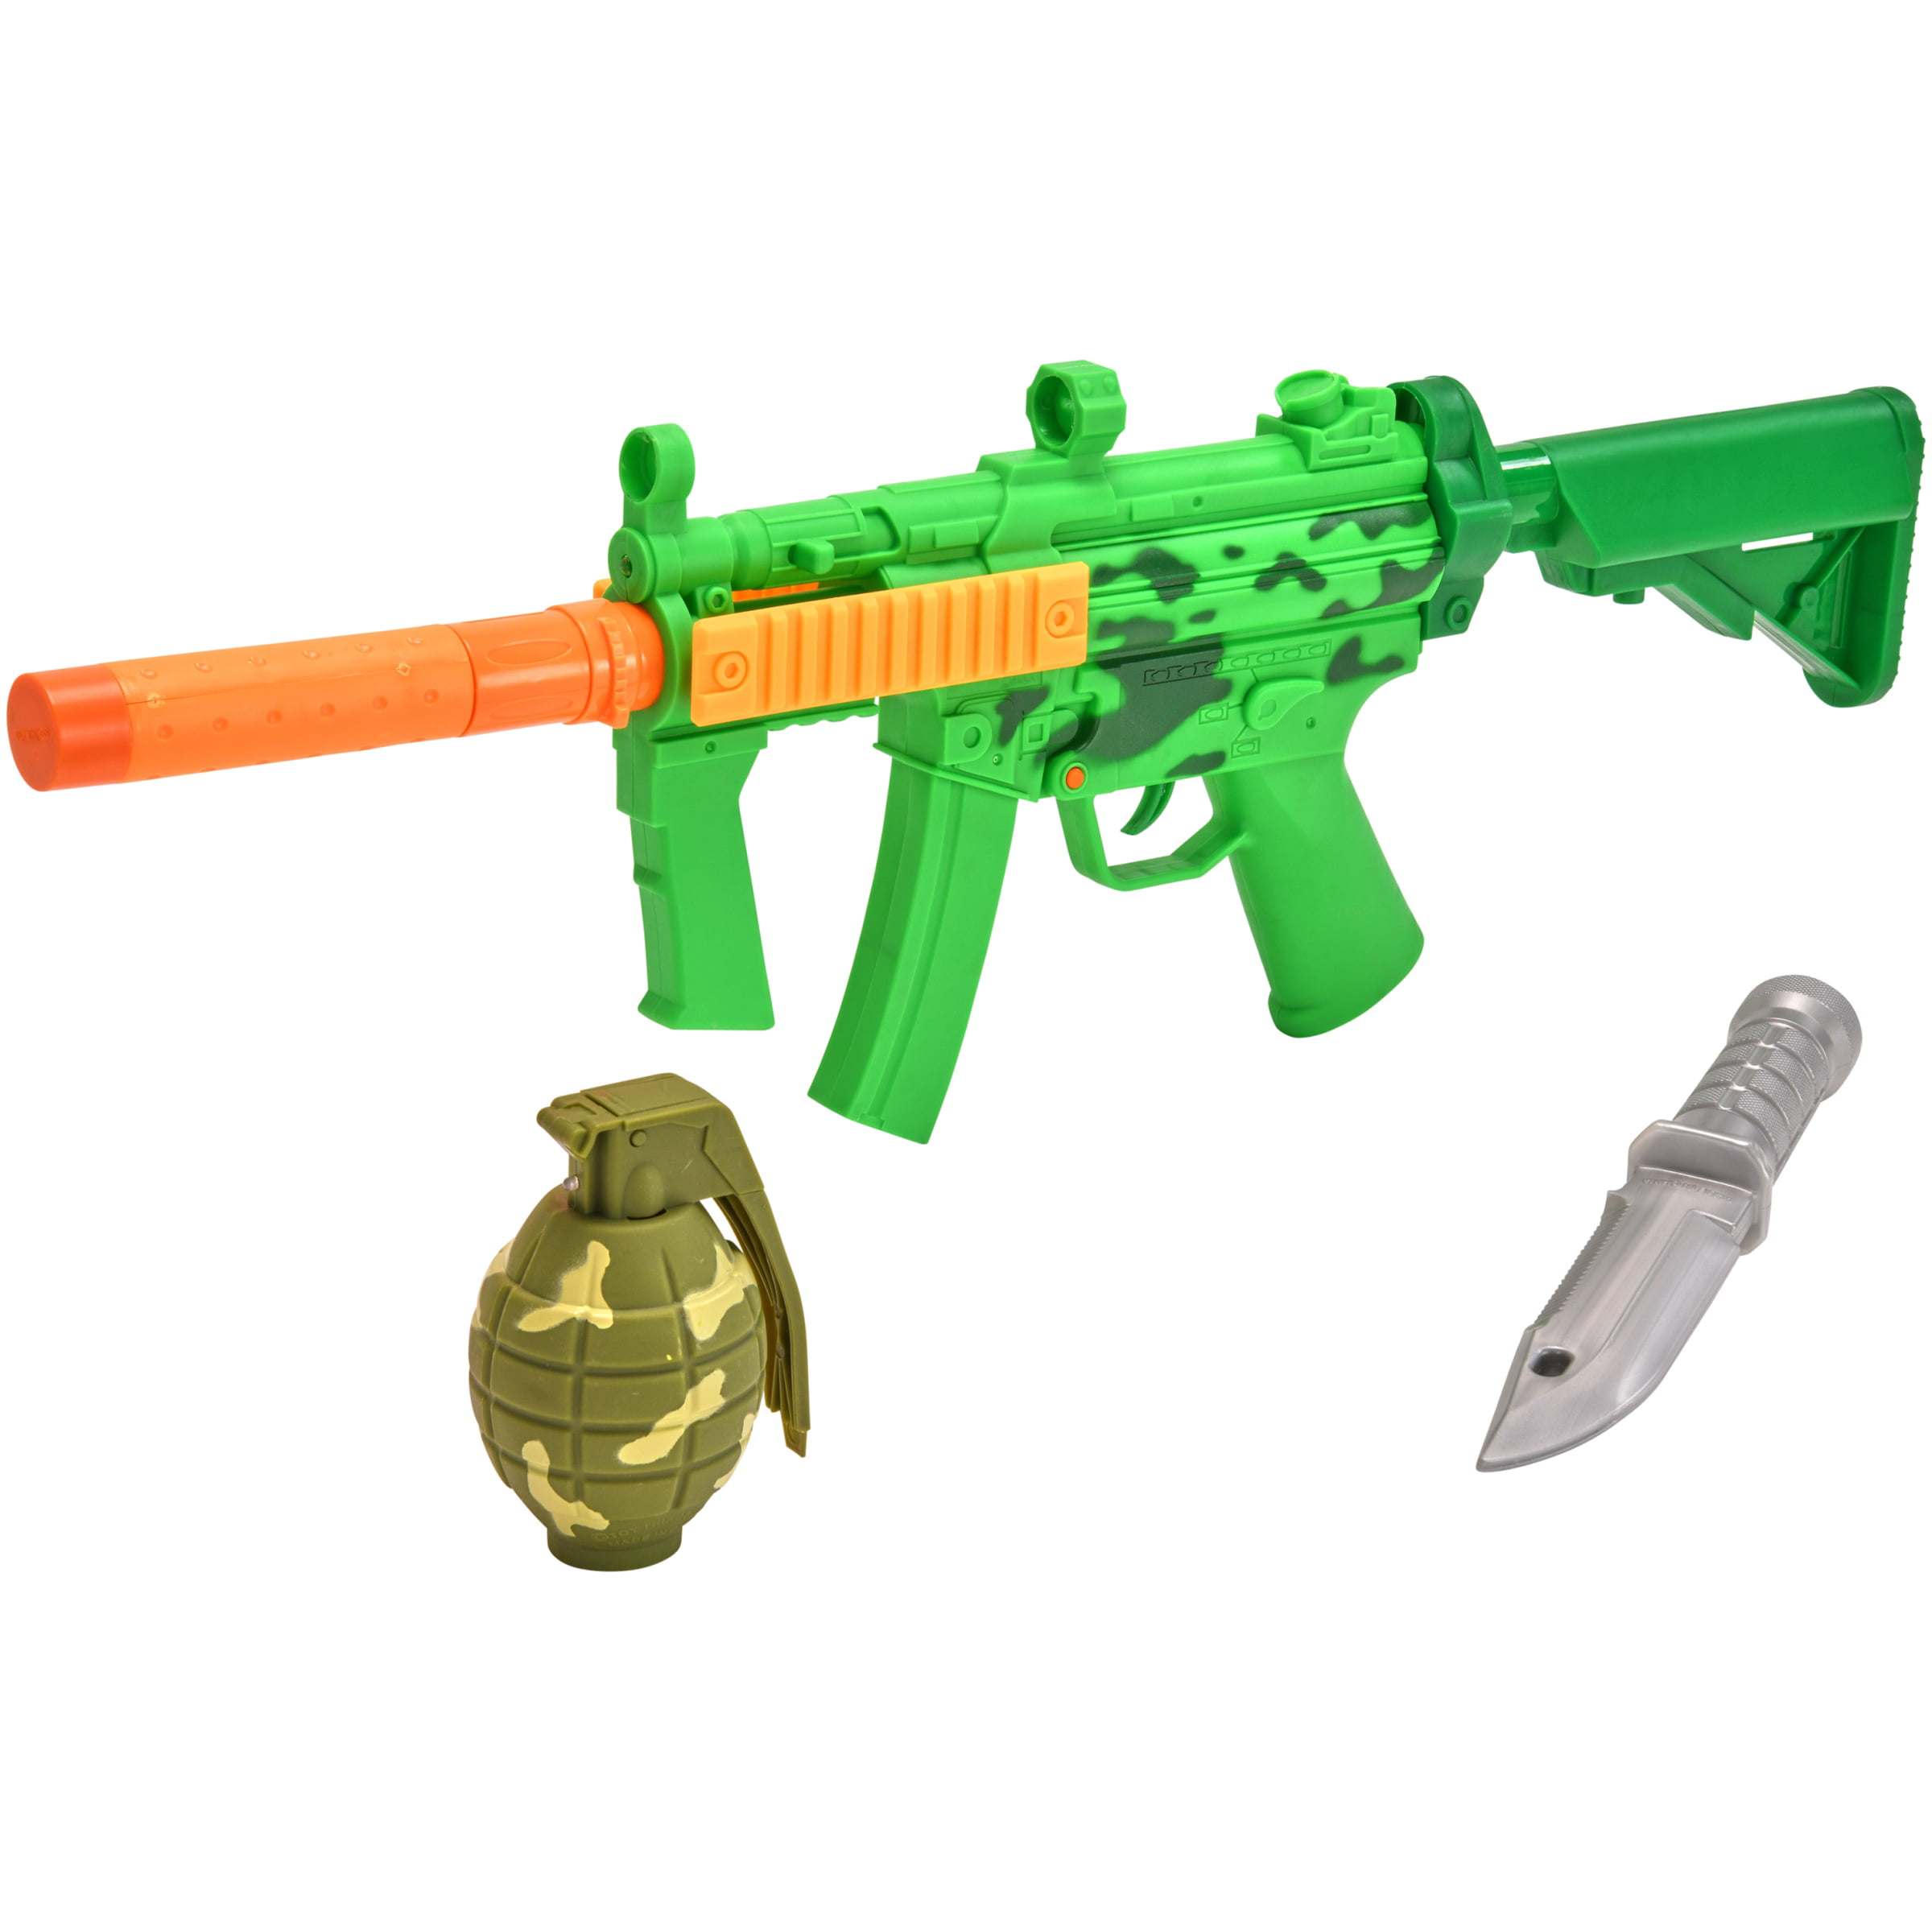 Role Pack of 3 Kids Army Toy GREEN Hand Grenades With Flashing Light /& sound